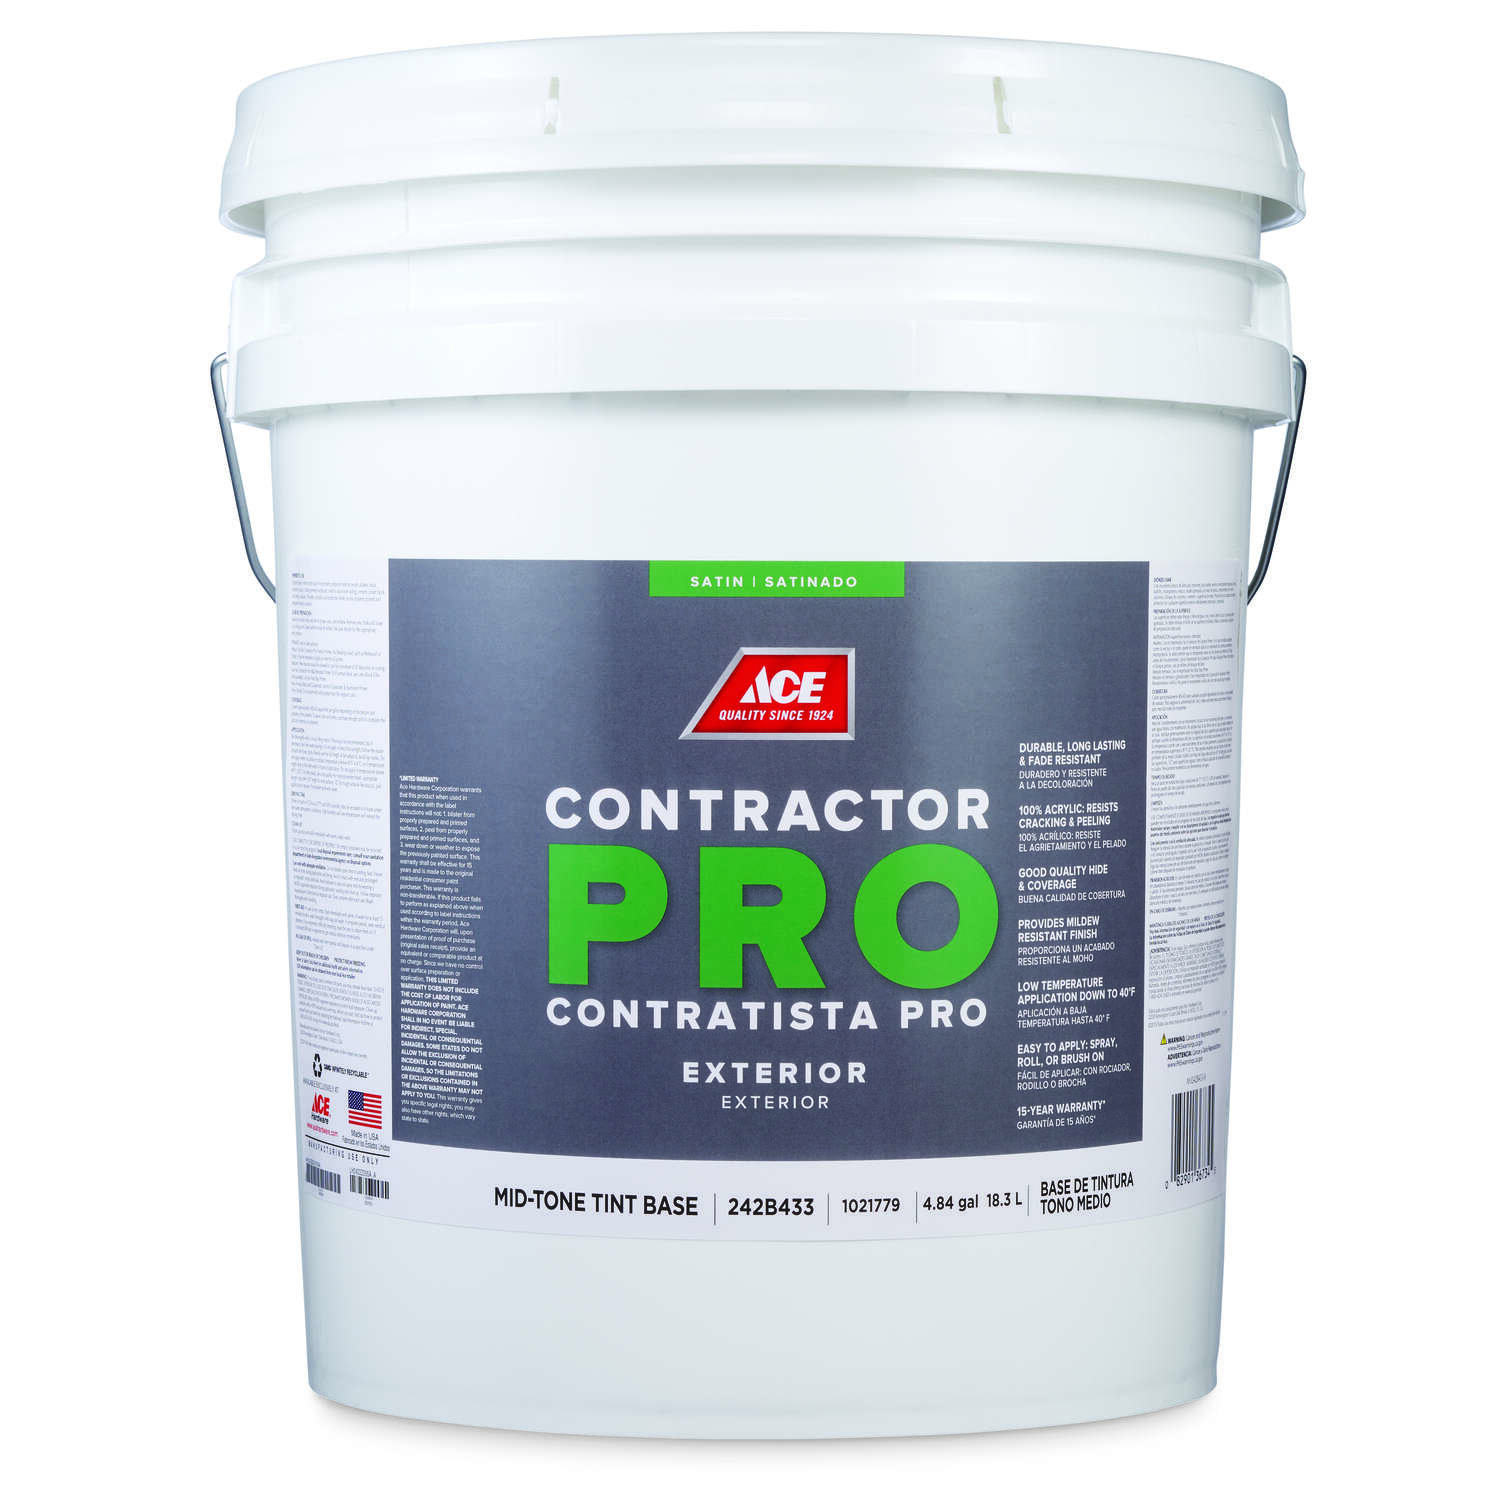 Ace  Contractor Pro  Satin  Tint Base  Mid-Tone Base  Acrylic Latex  Paint  Outdoor  5 gal.